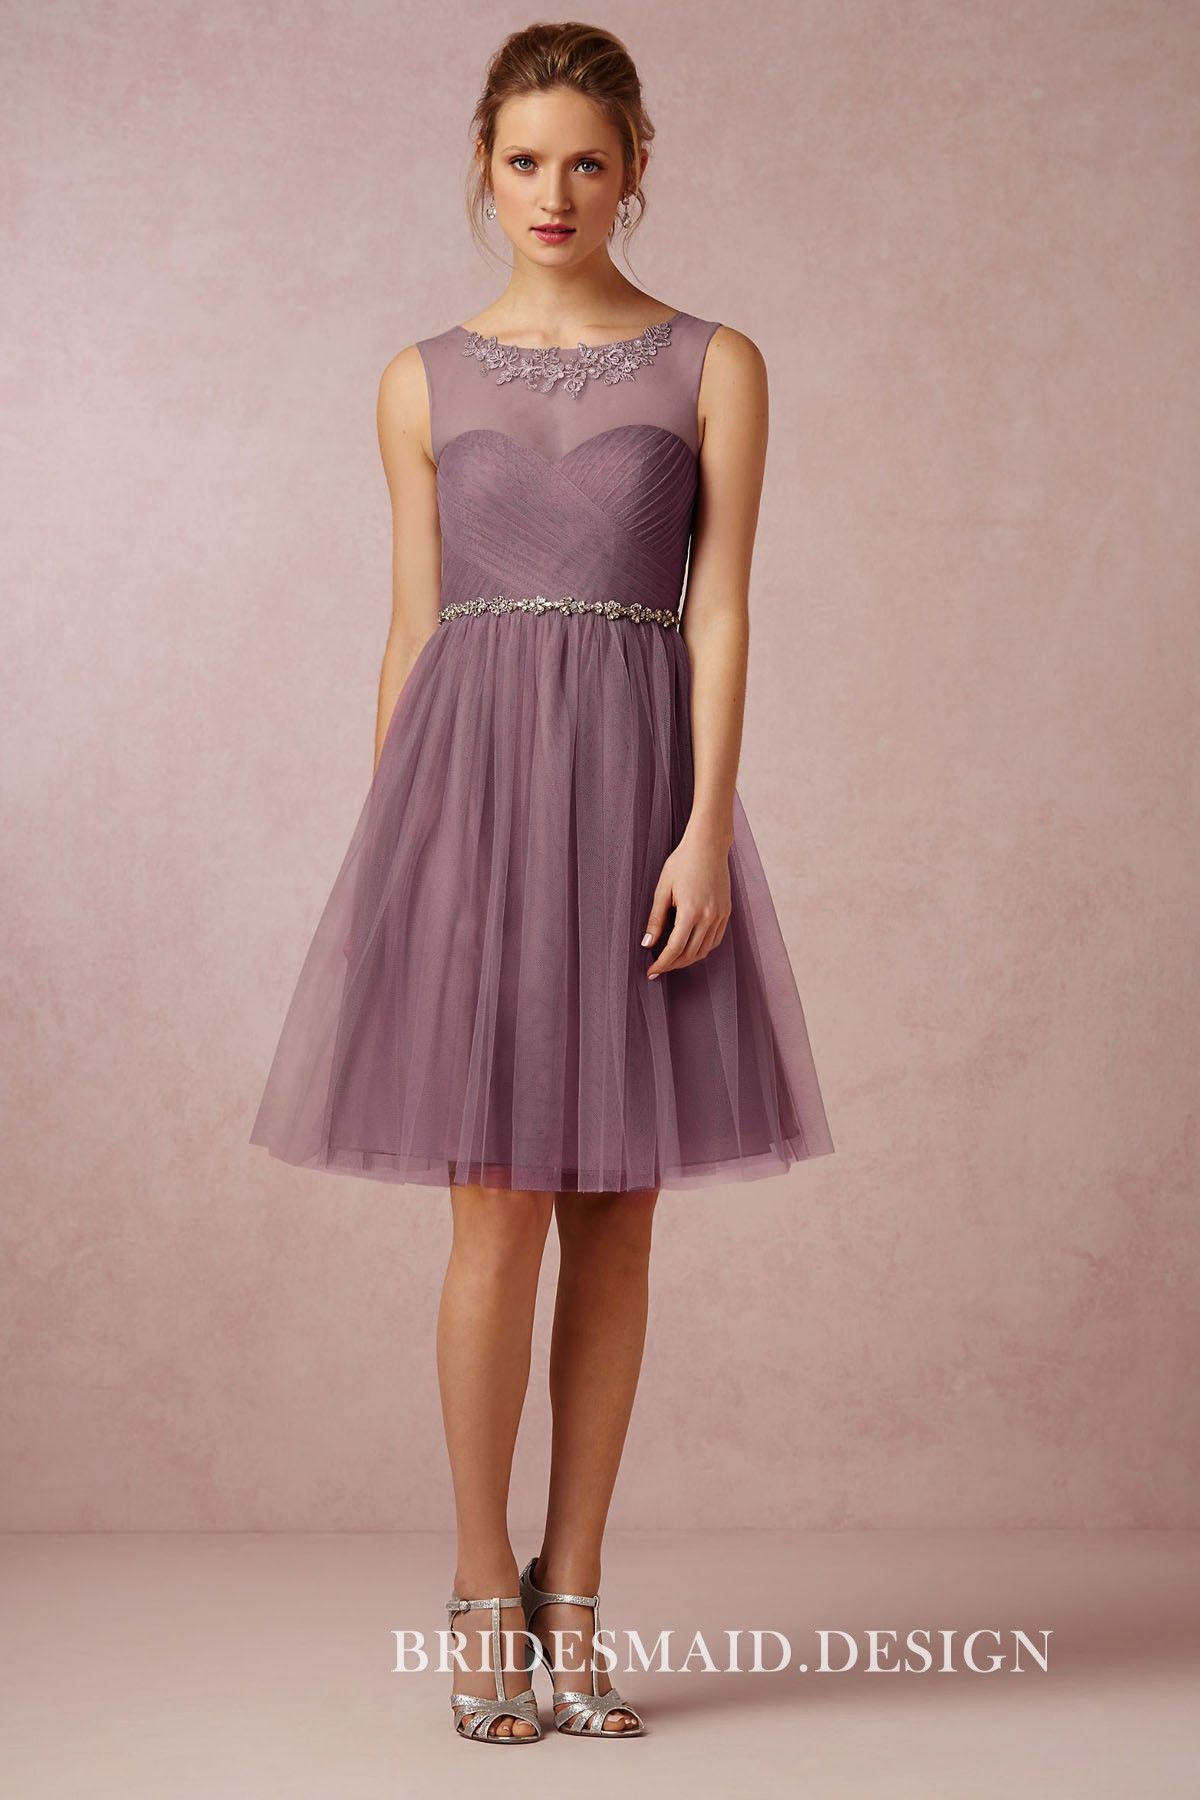 Pastel purple chiffon short bridesmaid dress with tulle overlay. Sleeveless  illusion neckline with lace appliques. 0d5fed878a8b